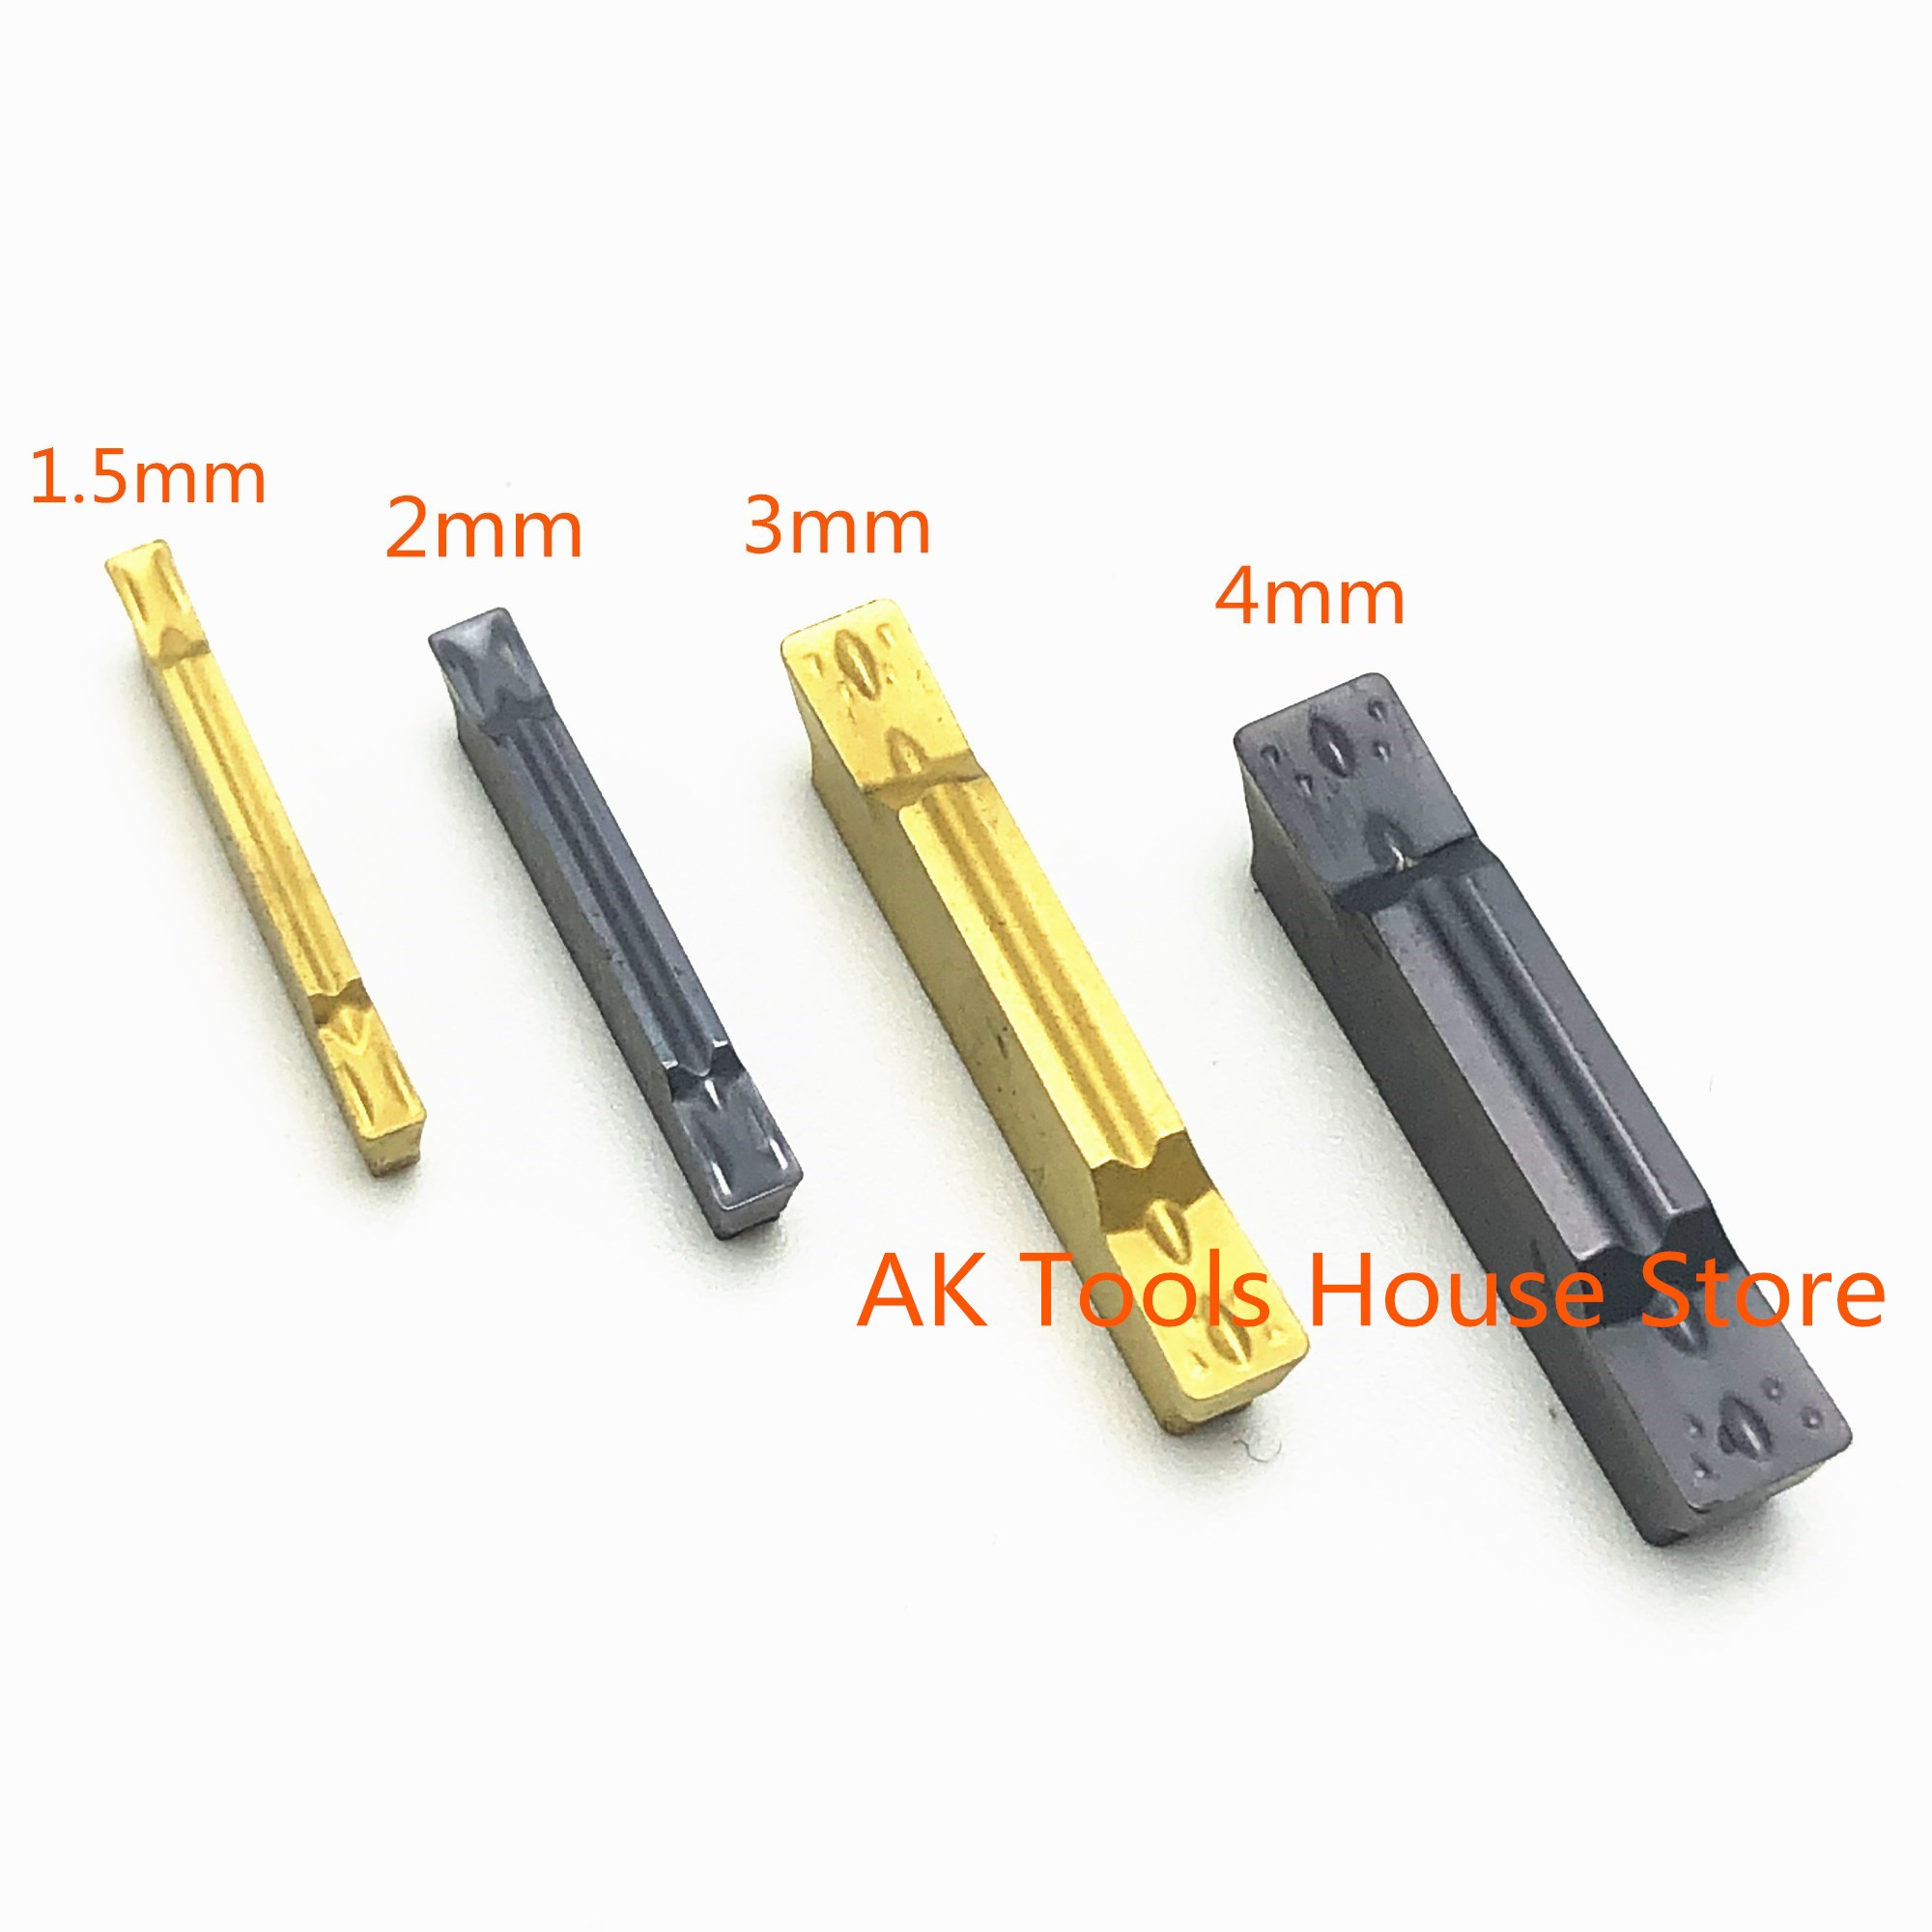 Korloy Grooving Tool MGMN150 MGMN200 MGMN300 MGMN400 NC3020 NC3030 PC9030 Slotted And Slotted Carbide Metal Turning Lathe Tools